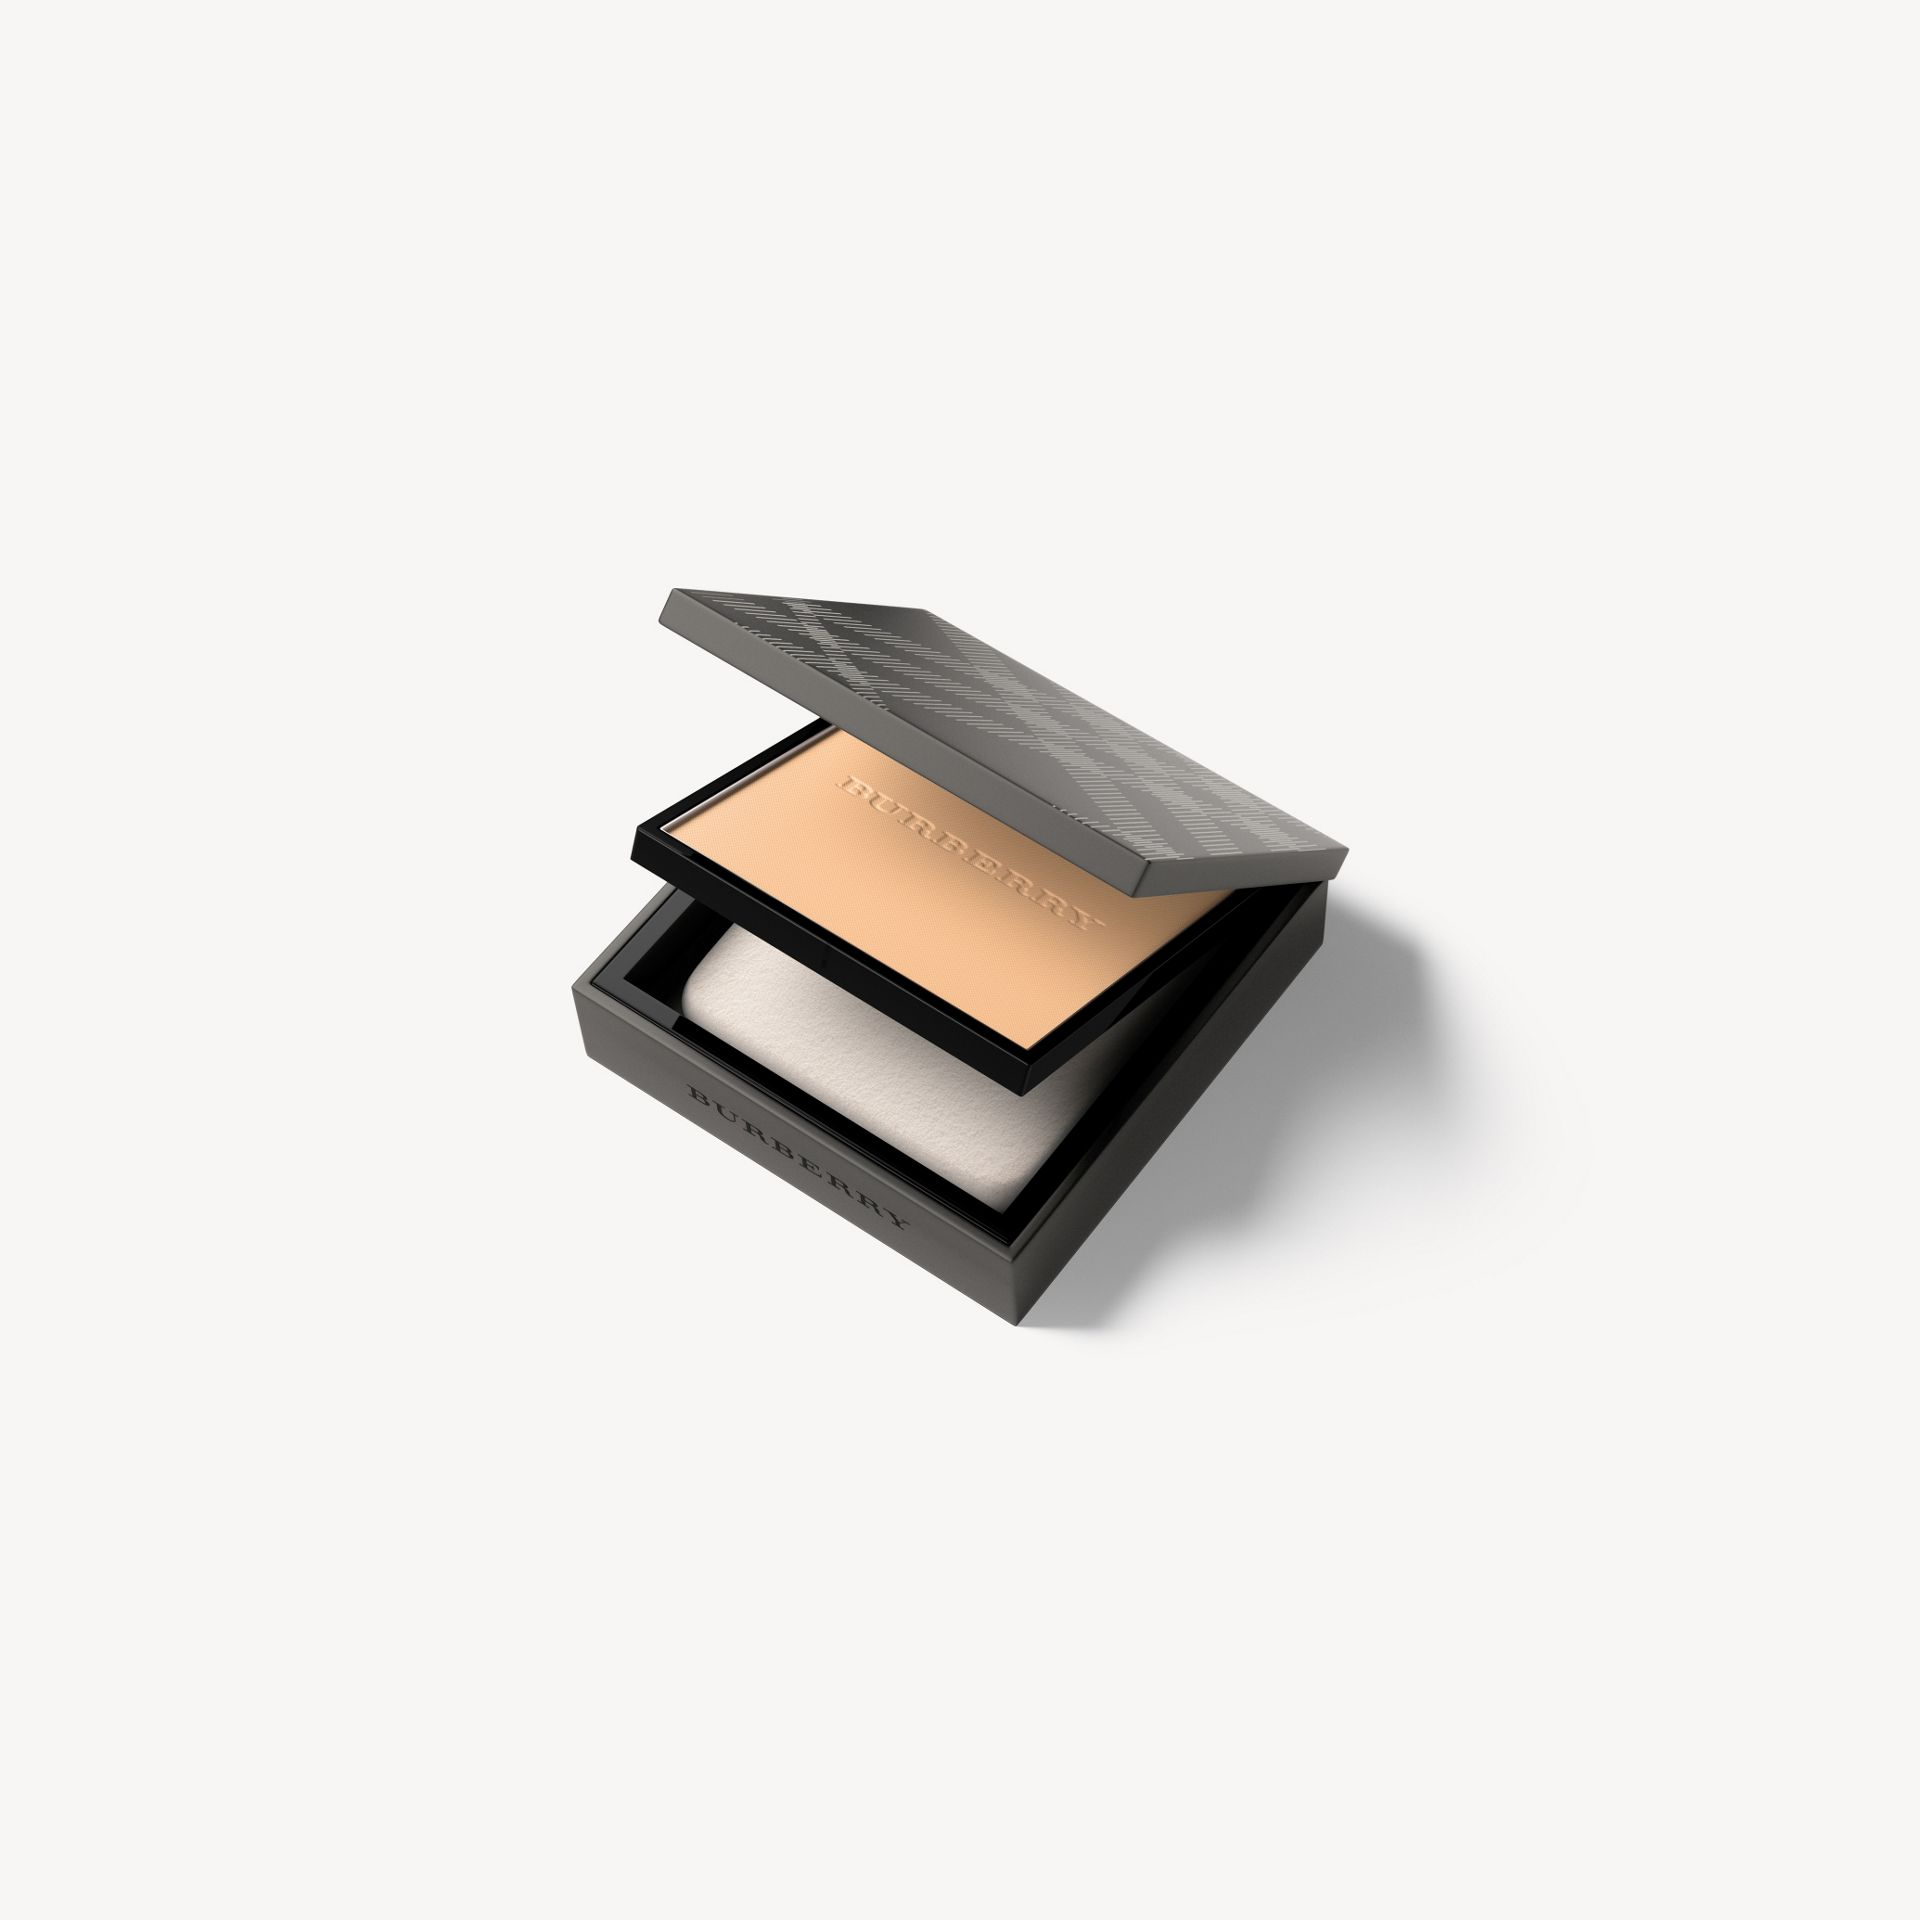 Light honey 10 Burberry Cashmere Compact – Light Honey No.10 - photo de la galerie 1